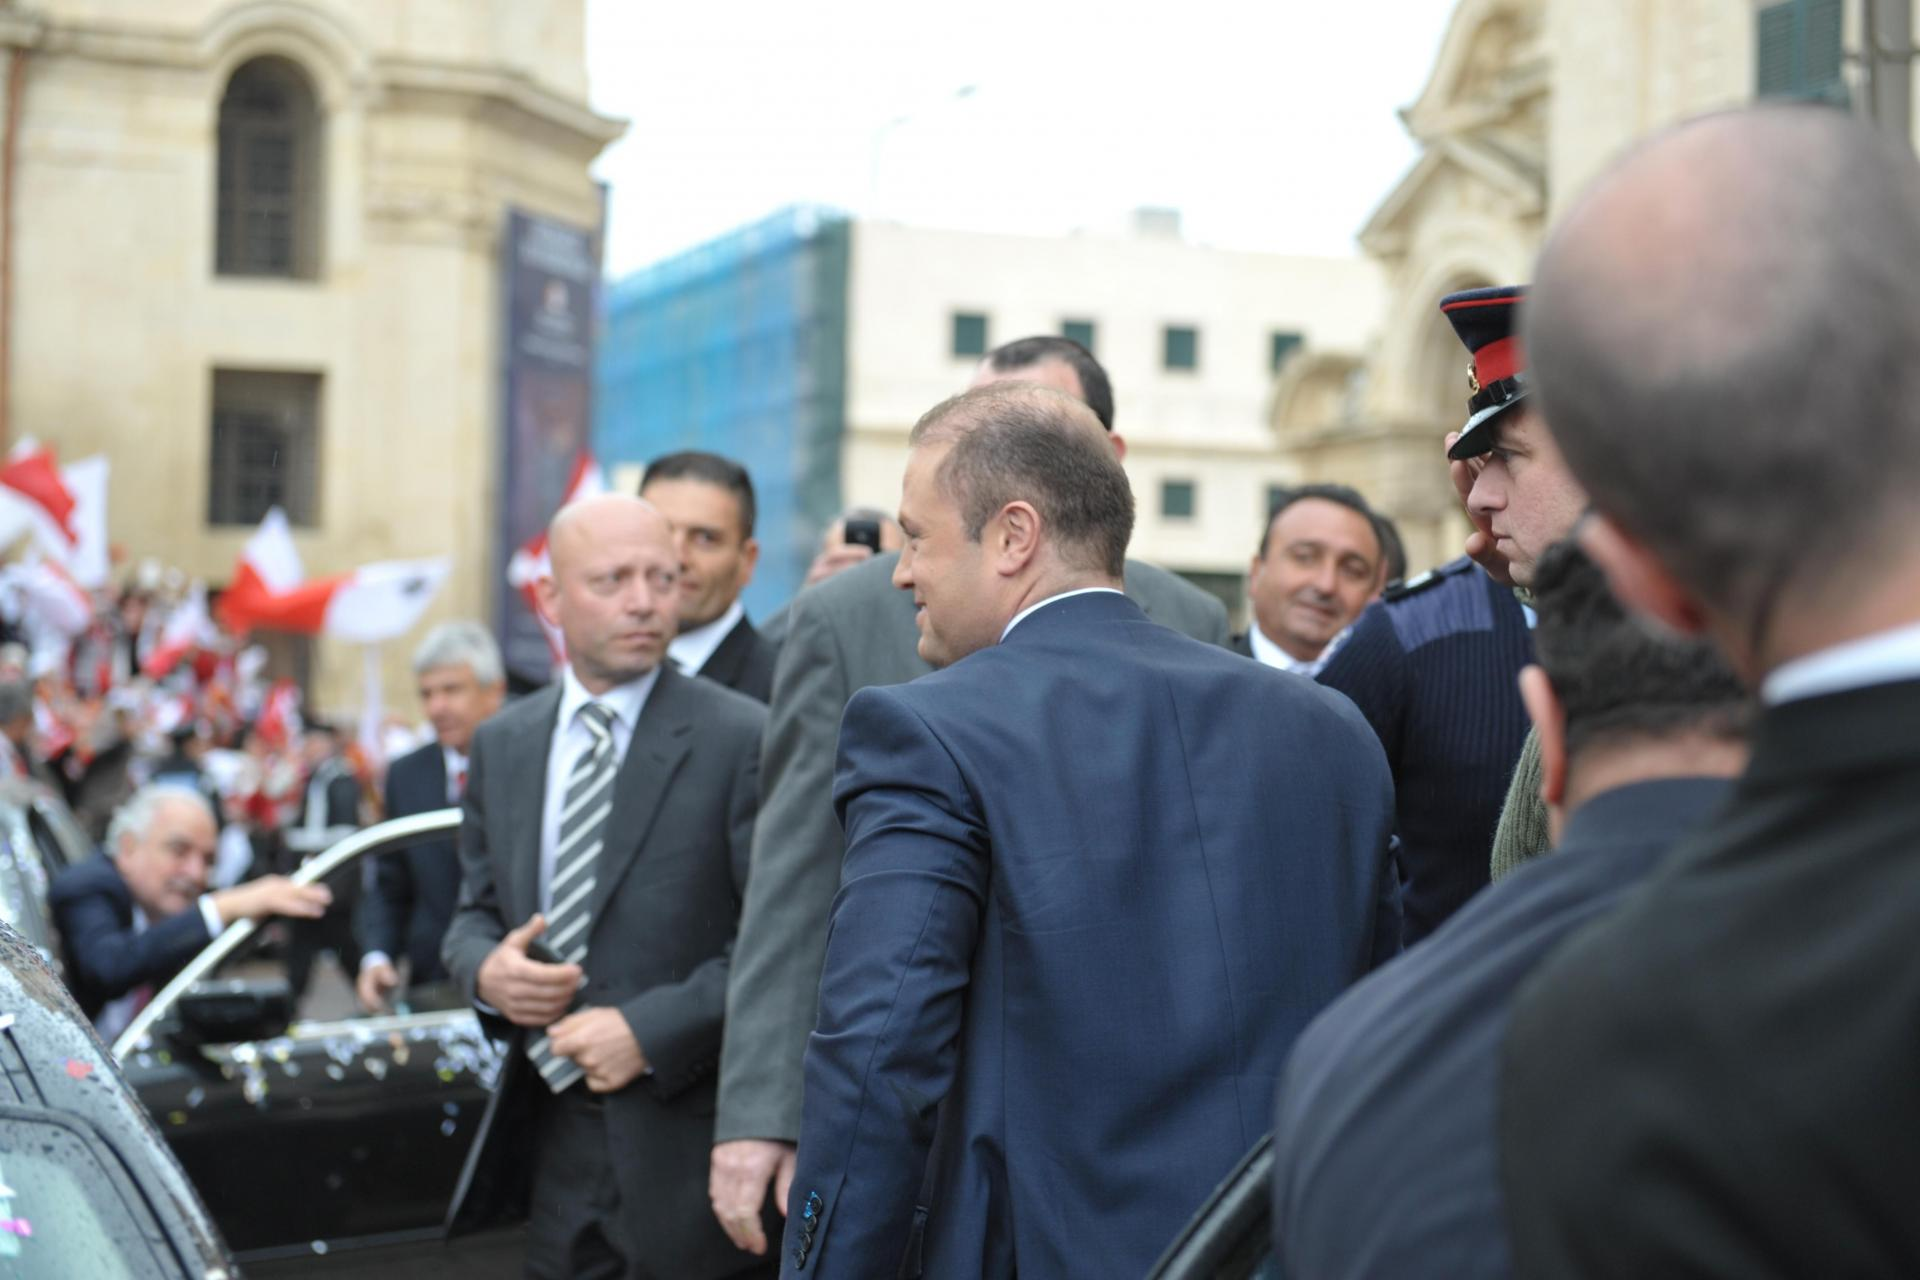 Mr Barbara (first left) outside Castille with Joseph Muscat in March 2013, when the Labour Party won the general election. Photo: Matthew Mirabelli